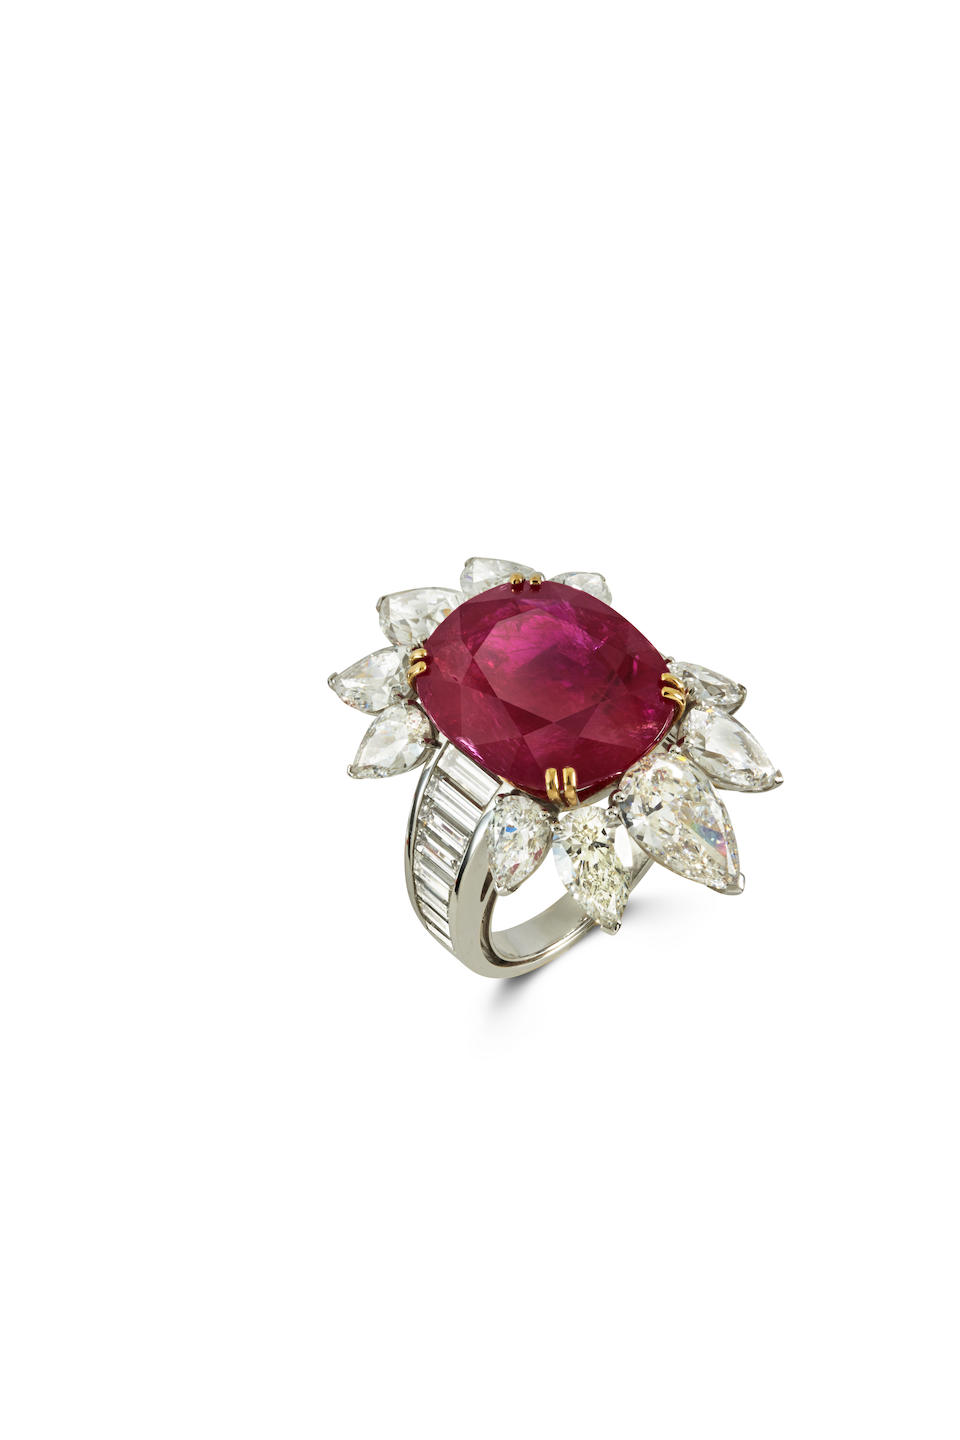 AN IMPRESSIVE RUBY AND DIAMOND RING, BY REPOSSI